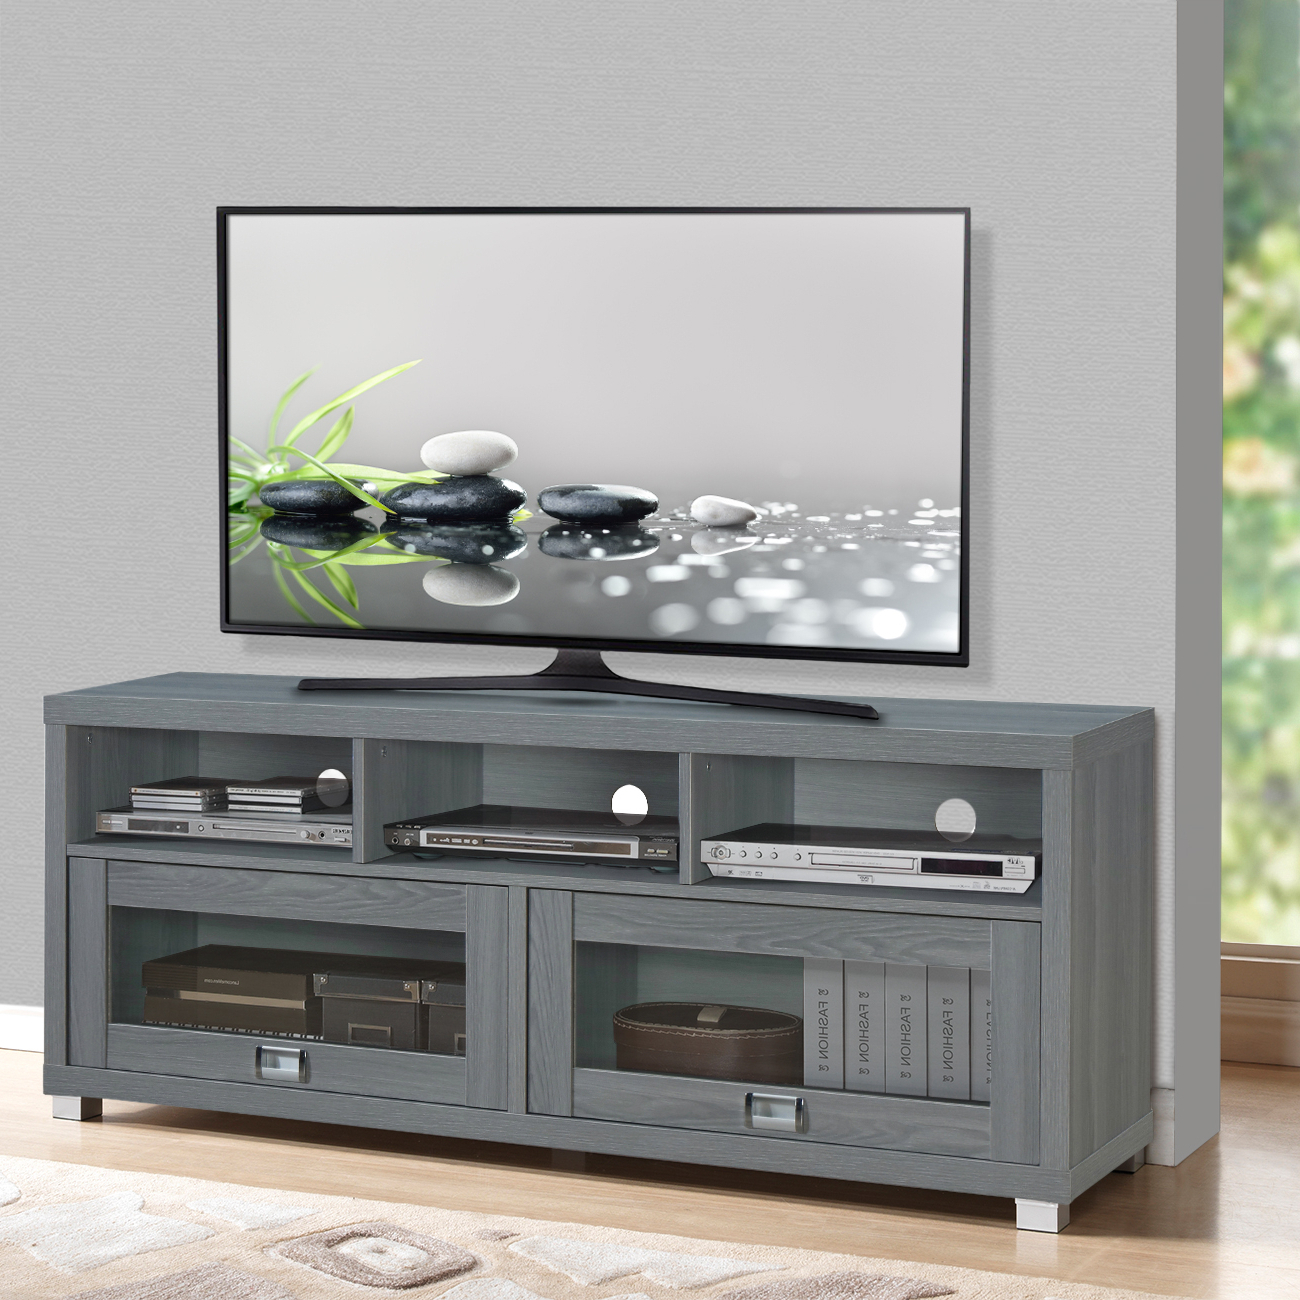 """Flat Screen Tv Stand Up To 75 Inch 50 55 60 65 70 55in Inside Most Up To Date Totally Tv Stands For Tvs Up To 65"""" (View 23 of 25)"""